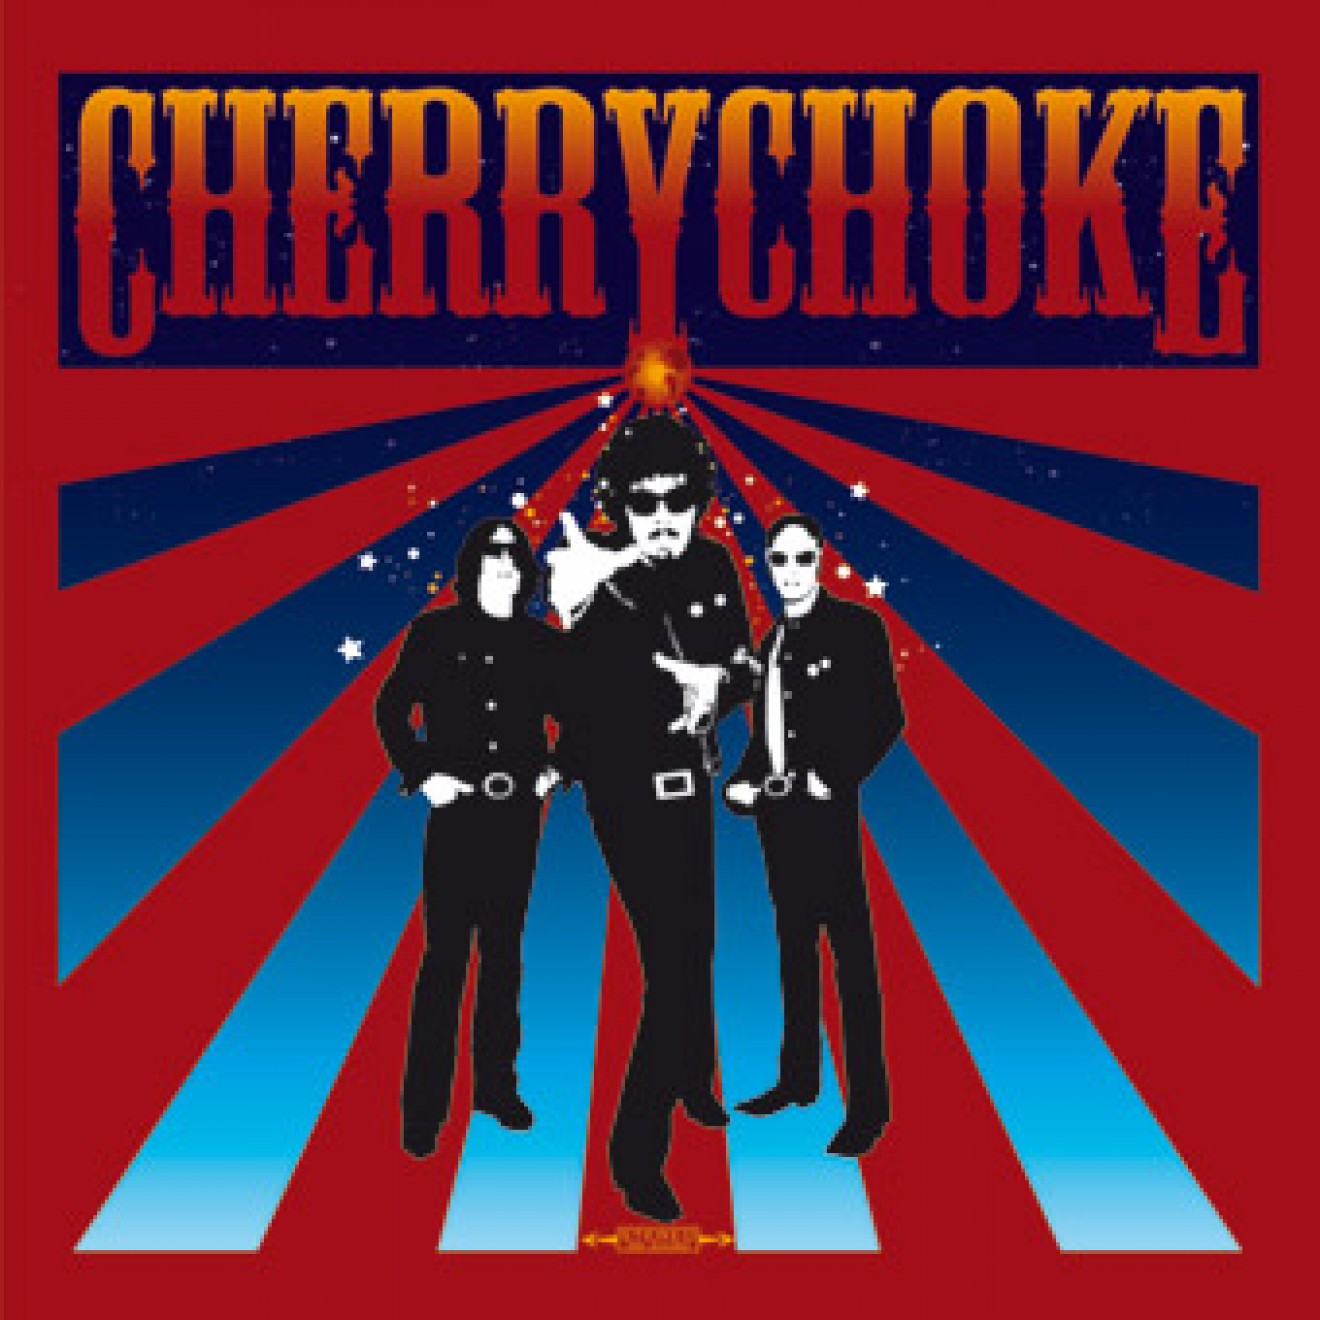 CHERRY CHOKE - s/t CD